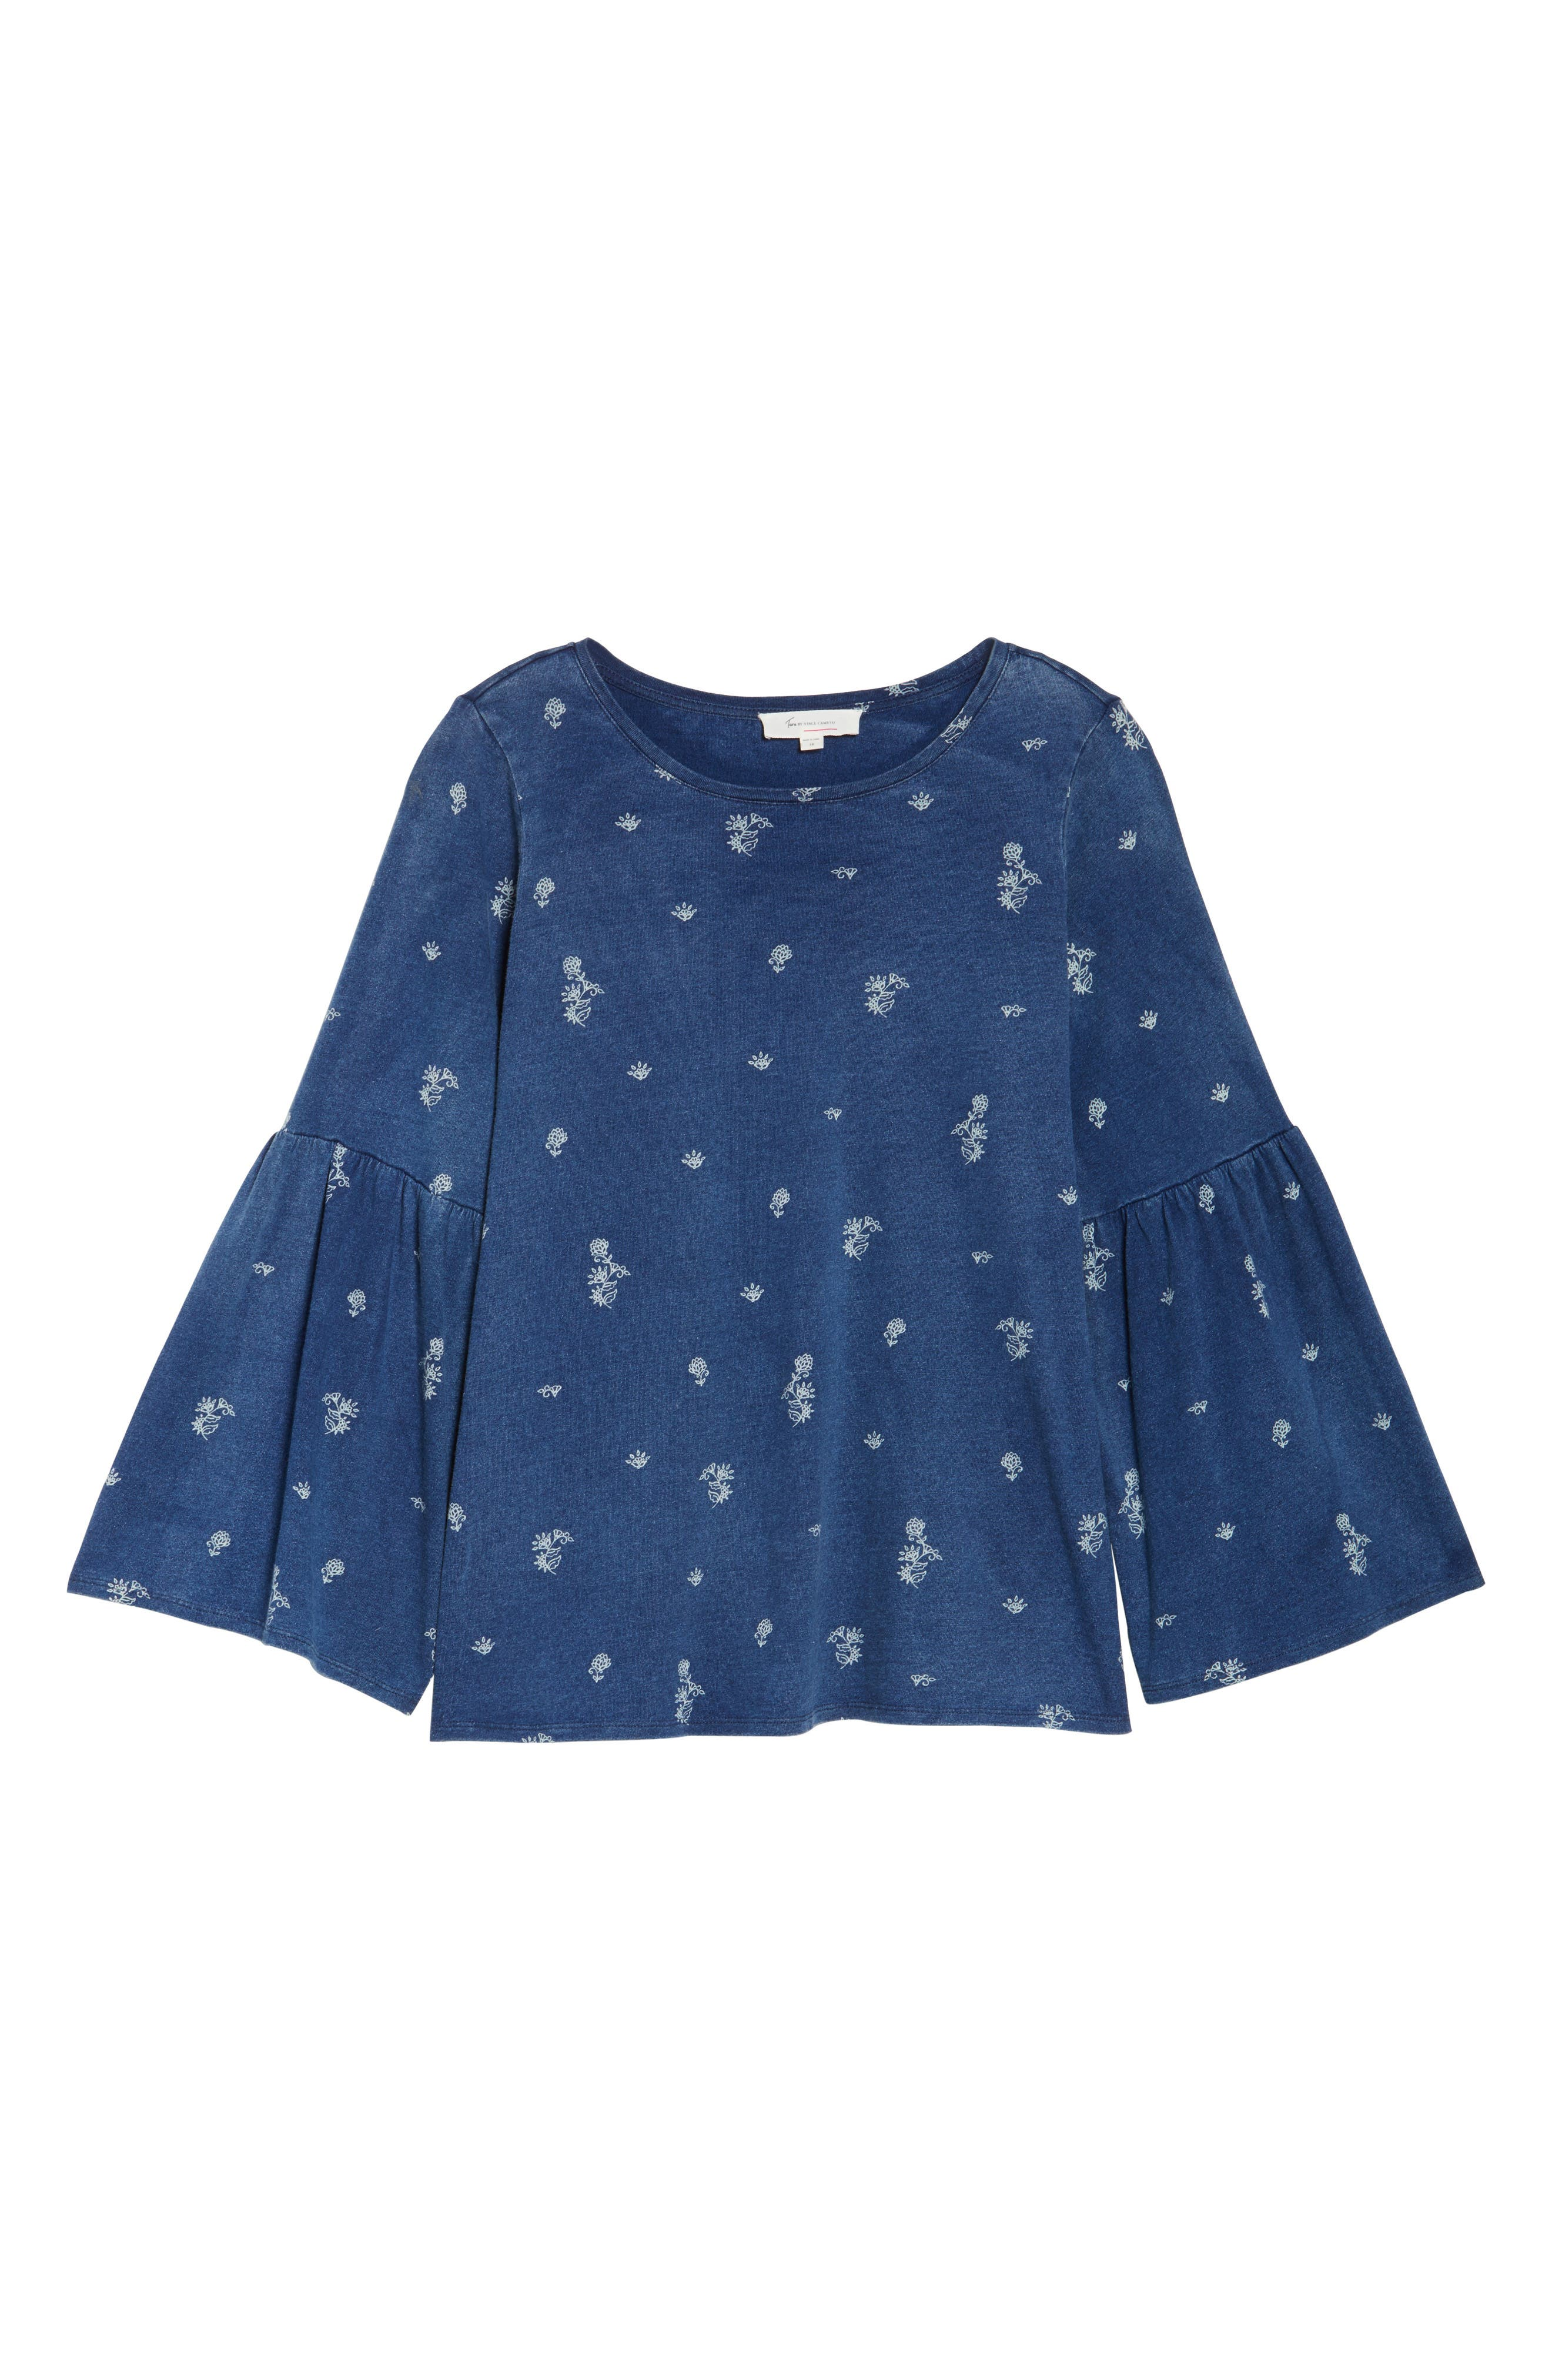 Ditzy Floral Print Bell Sleeve Top,                             Alternate thumbnail 6, color,                             TRUE INDIGO